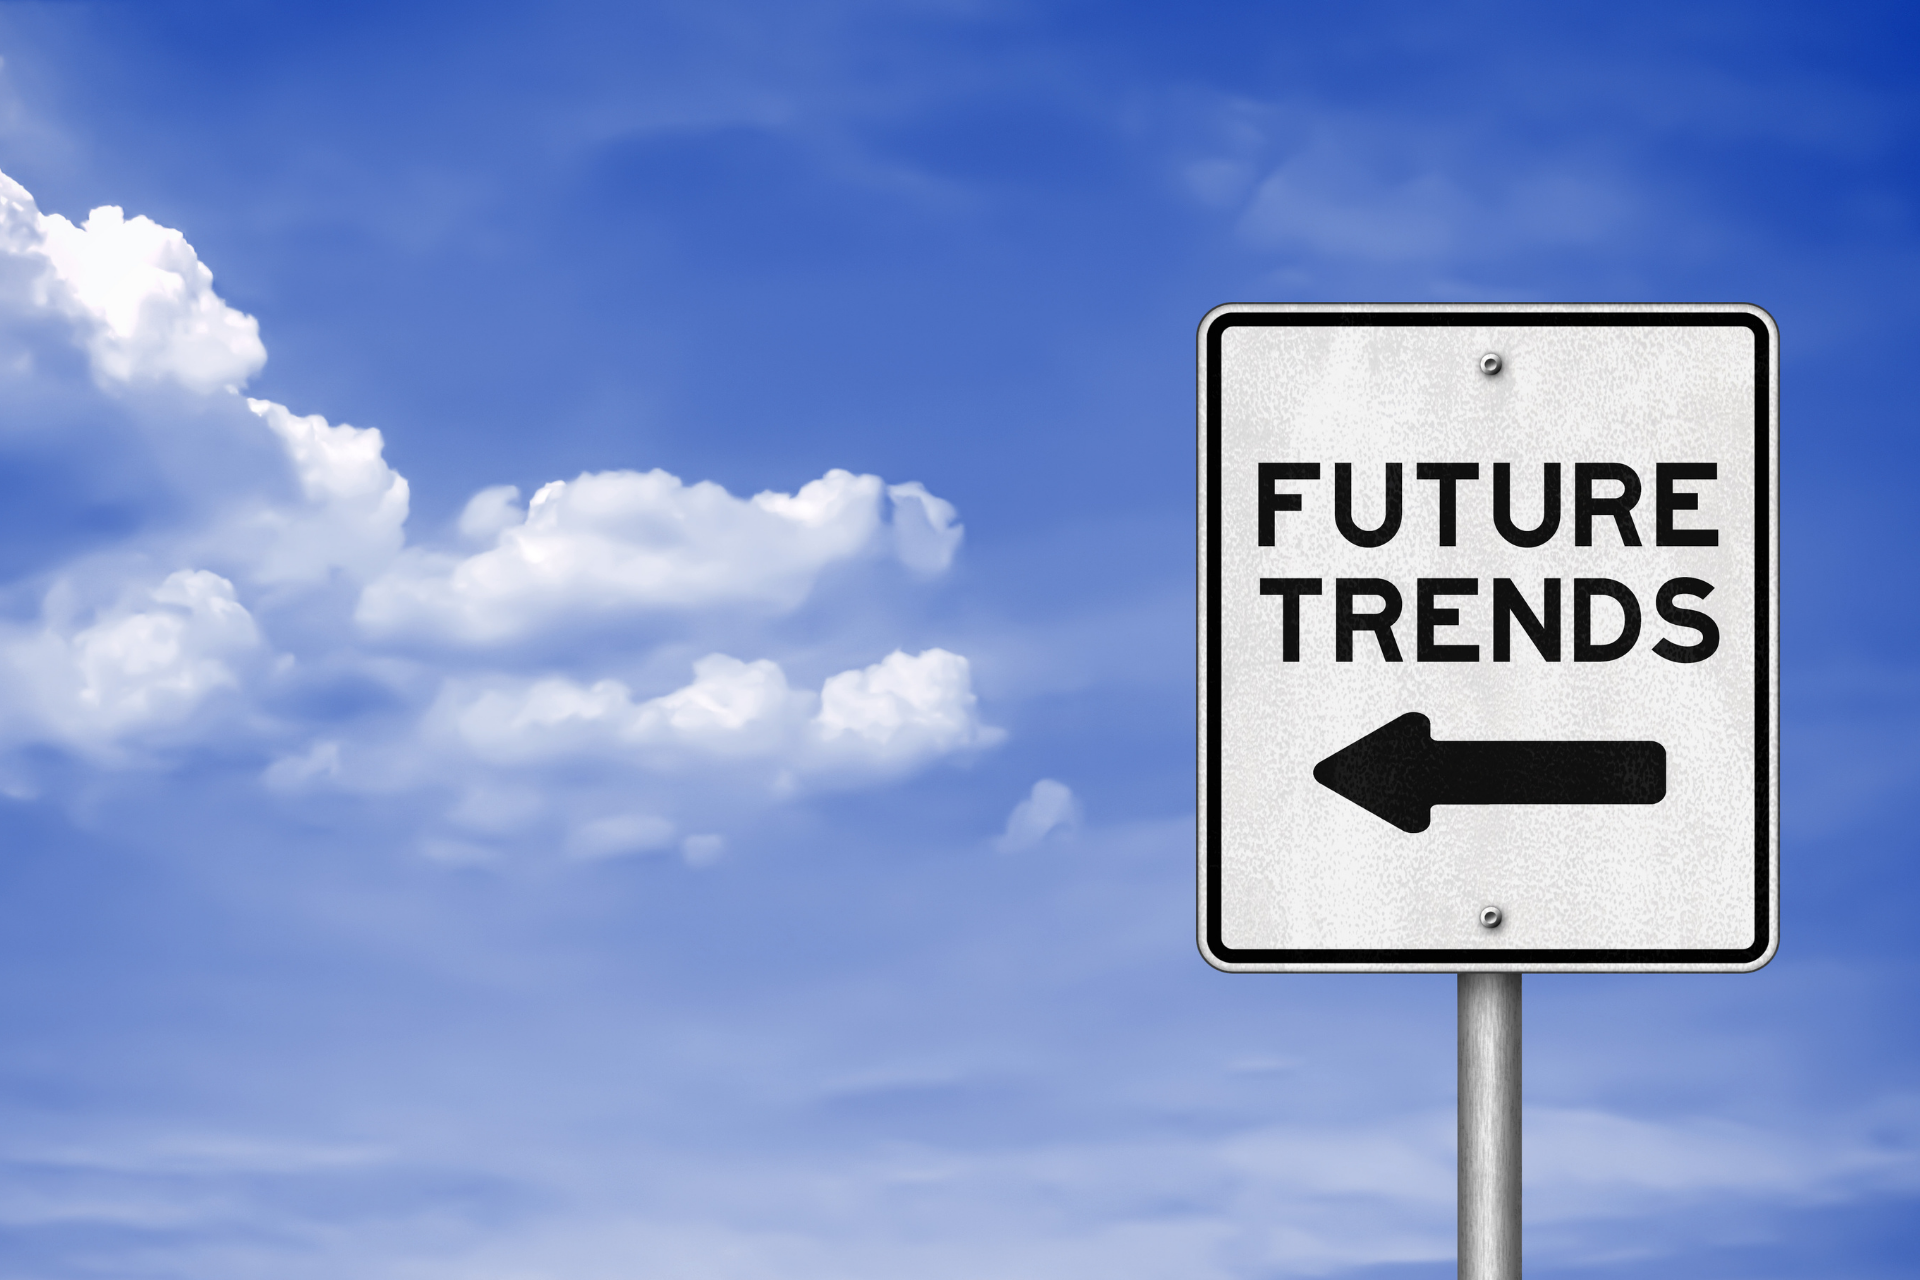 Image with a sign saying future trends